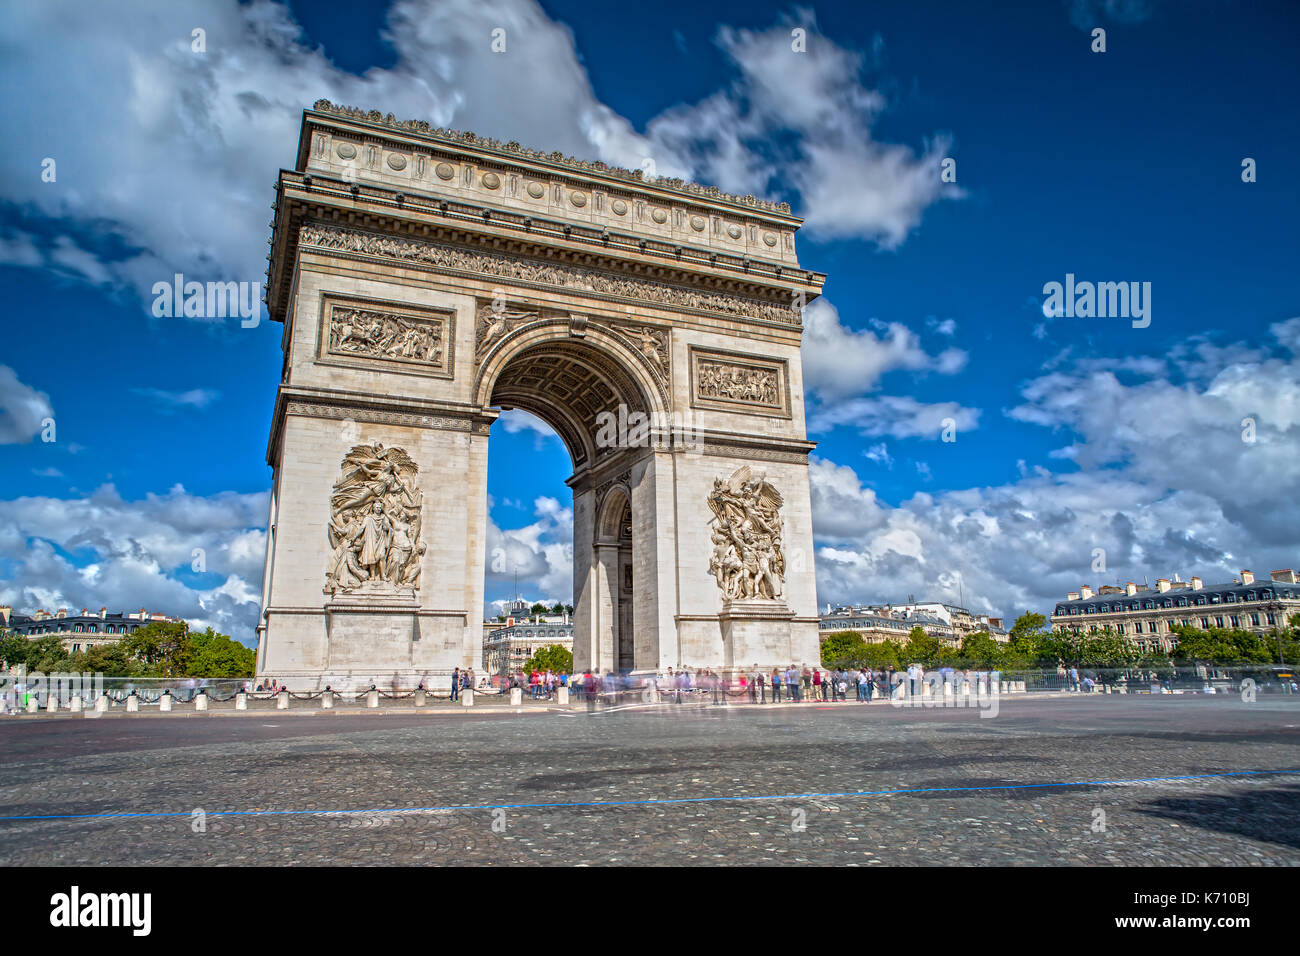 Arc de Triomphe on the Champs Elysees in Paris - Stock Image